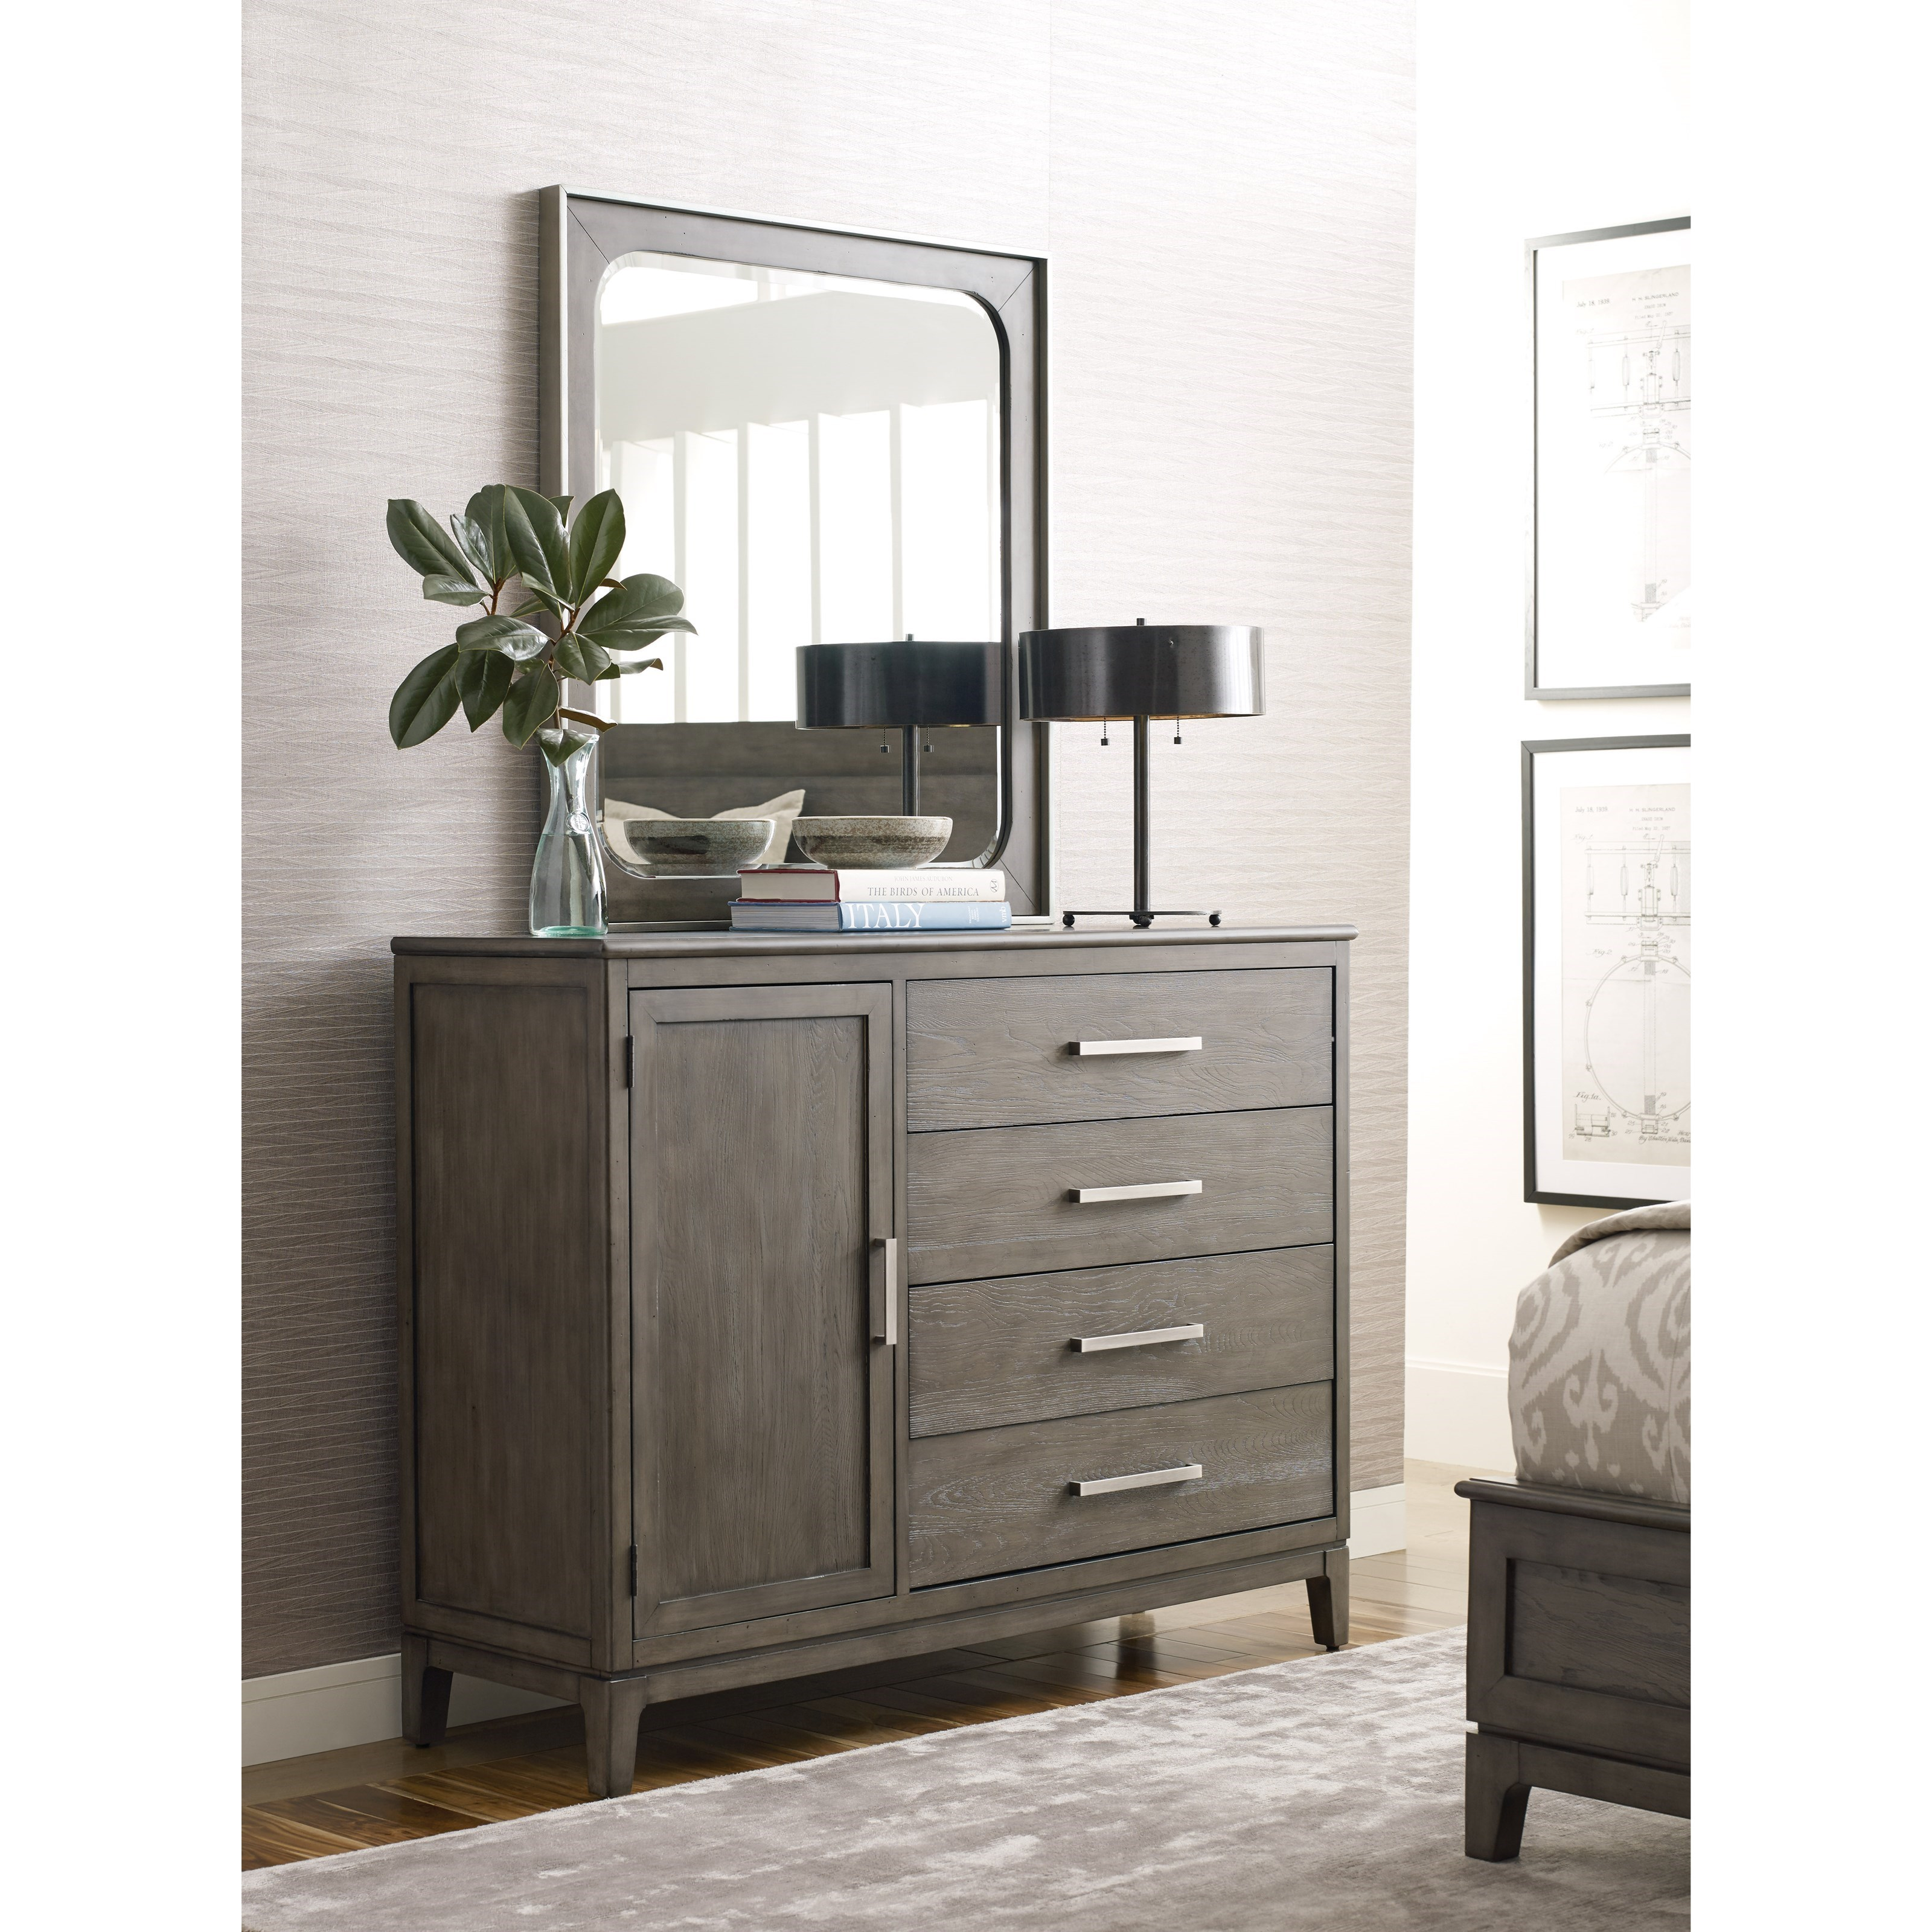 Cascade Garrison Door Bureau and Mirror Set by Kincaid Furniture at Johnny Janosik